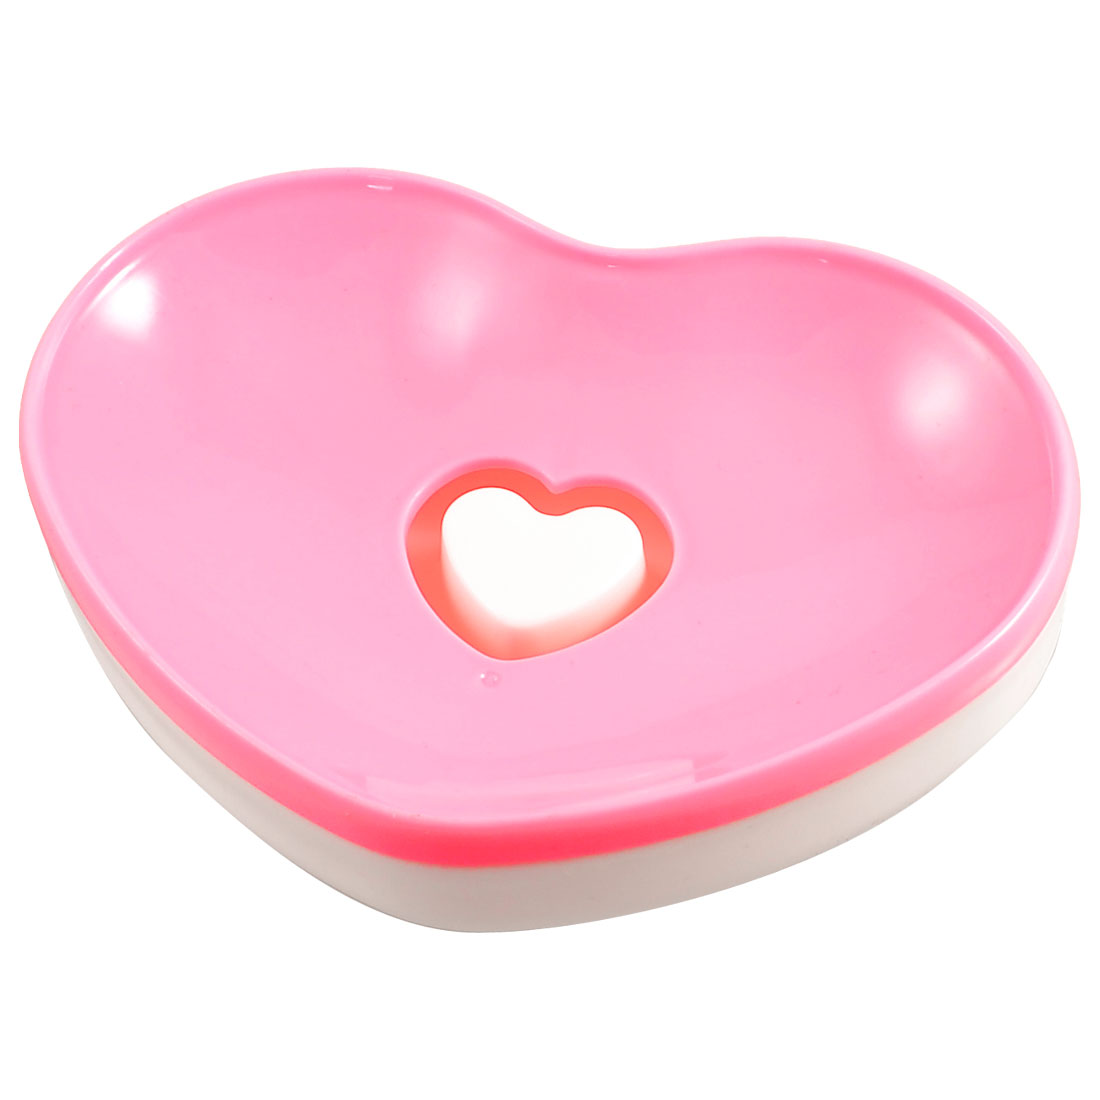 Household Bathroom Plastic Heart Shaped Soap Dish Box Pink White